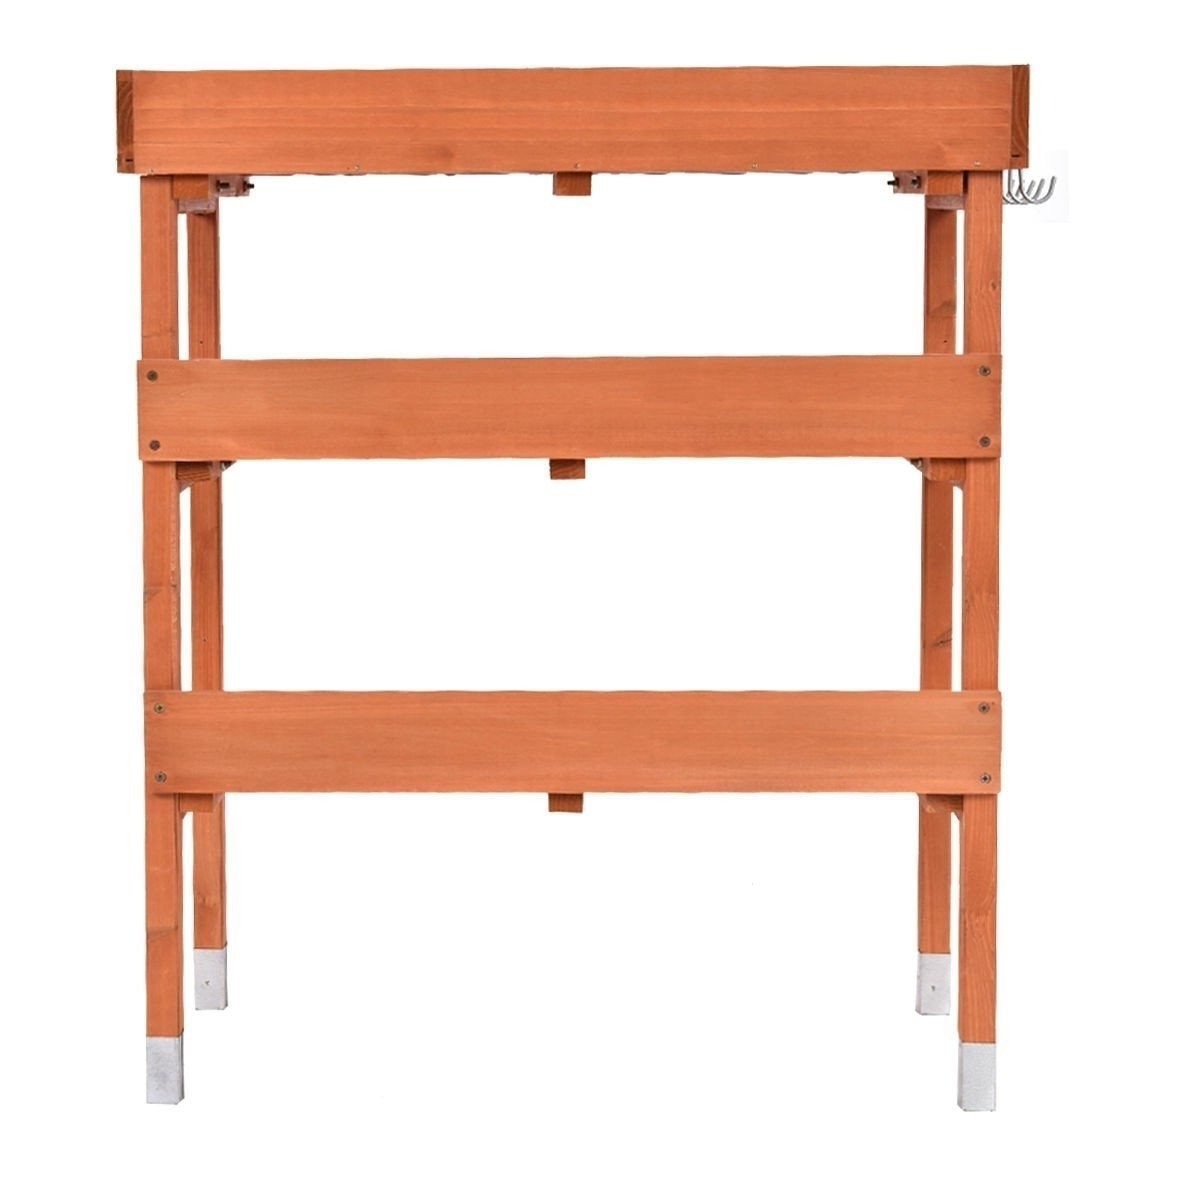 Outdoor Garden Wood Potting Bench Storage Shelf with Metal Top.